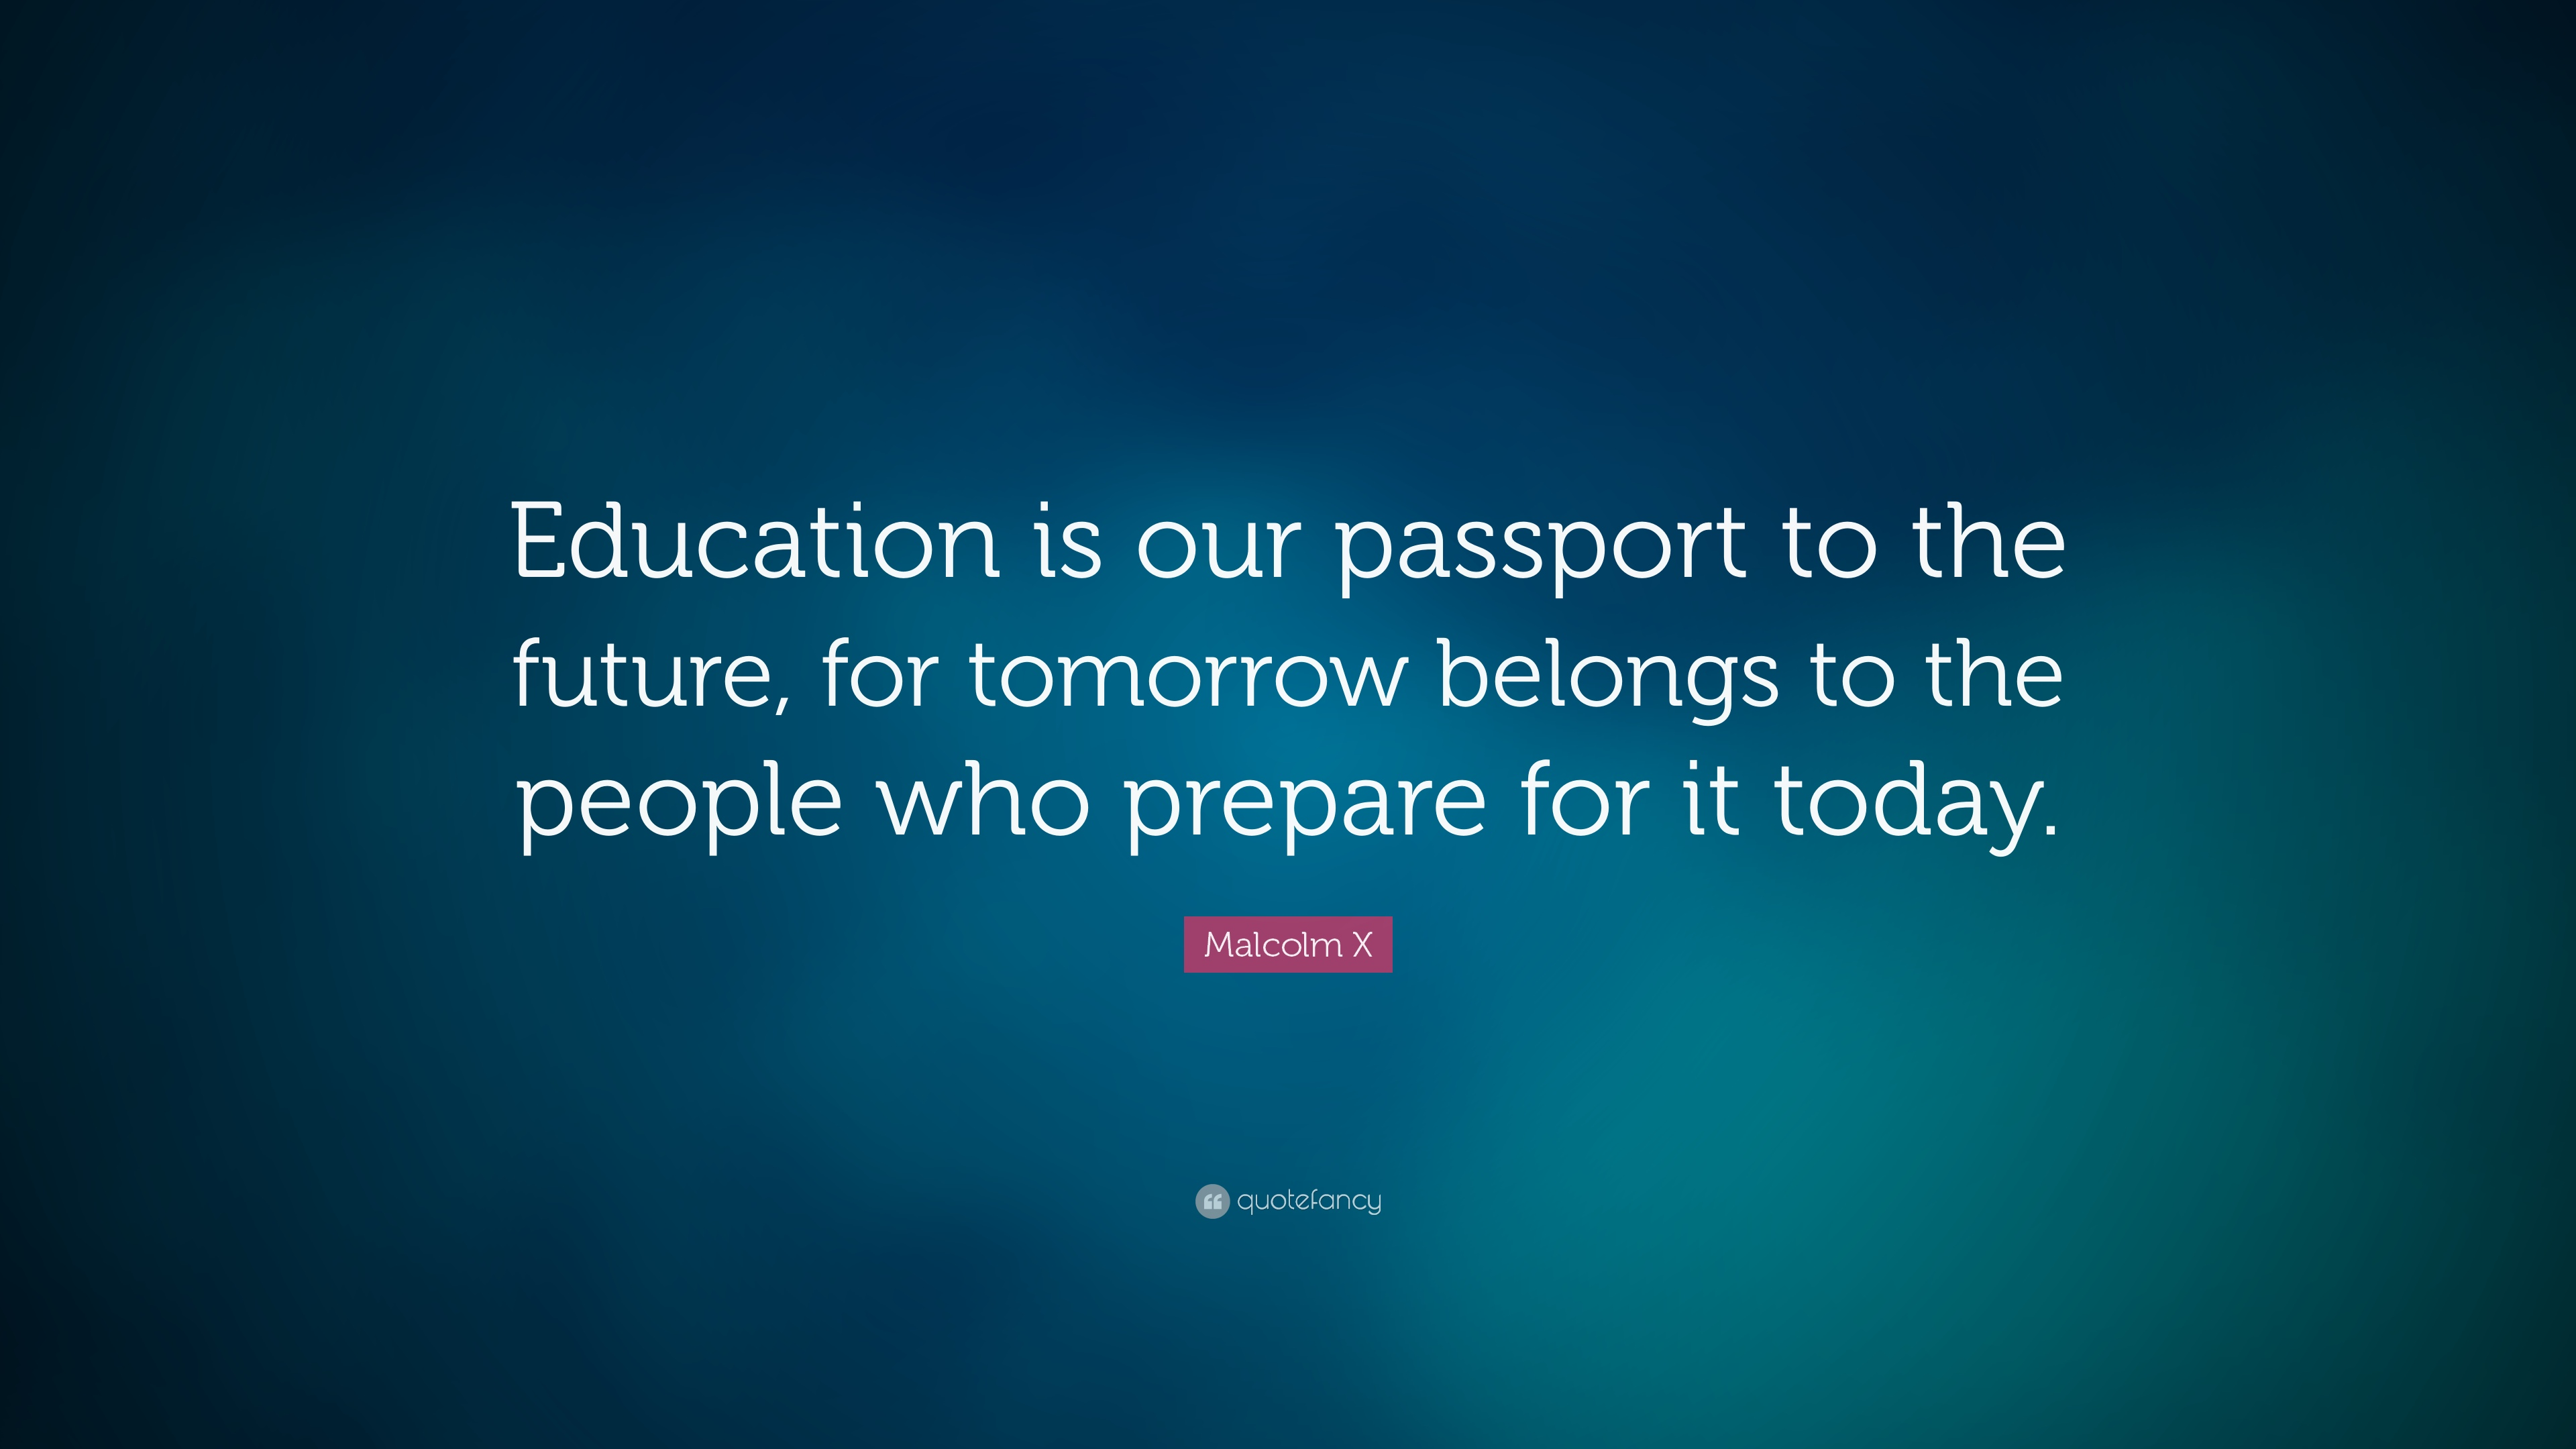 Malcolm X Wallpaper Quotes Malcolm X Quote Education Is Our Passport To The Future